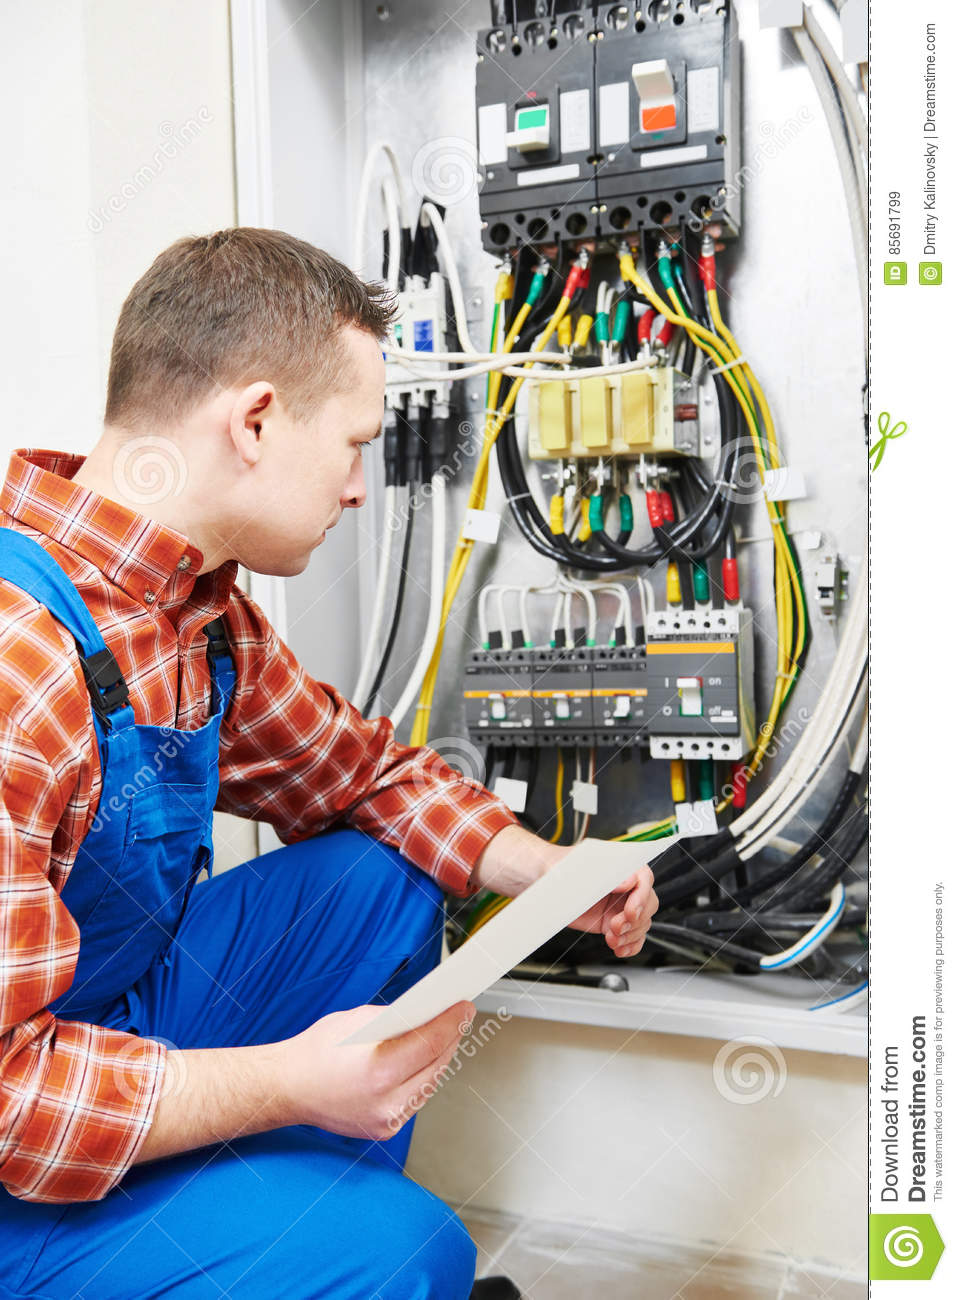 electrician hand test voltage screwdriver electric checking switching electric actuator equipment fuse box 85691799 electrician hand with test voltage screwdriver stock photo image how to test voltage at fuse box at eliteediting.co